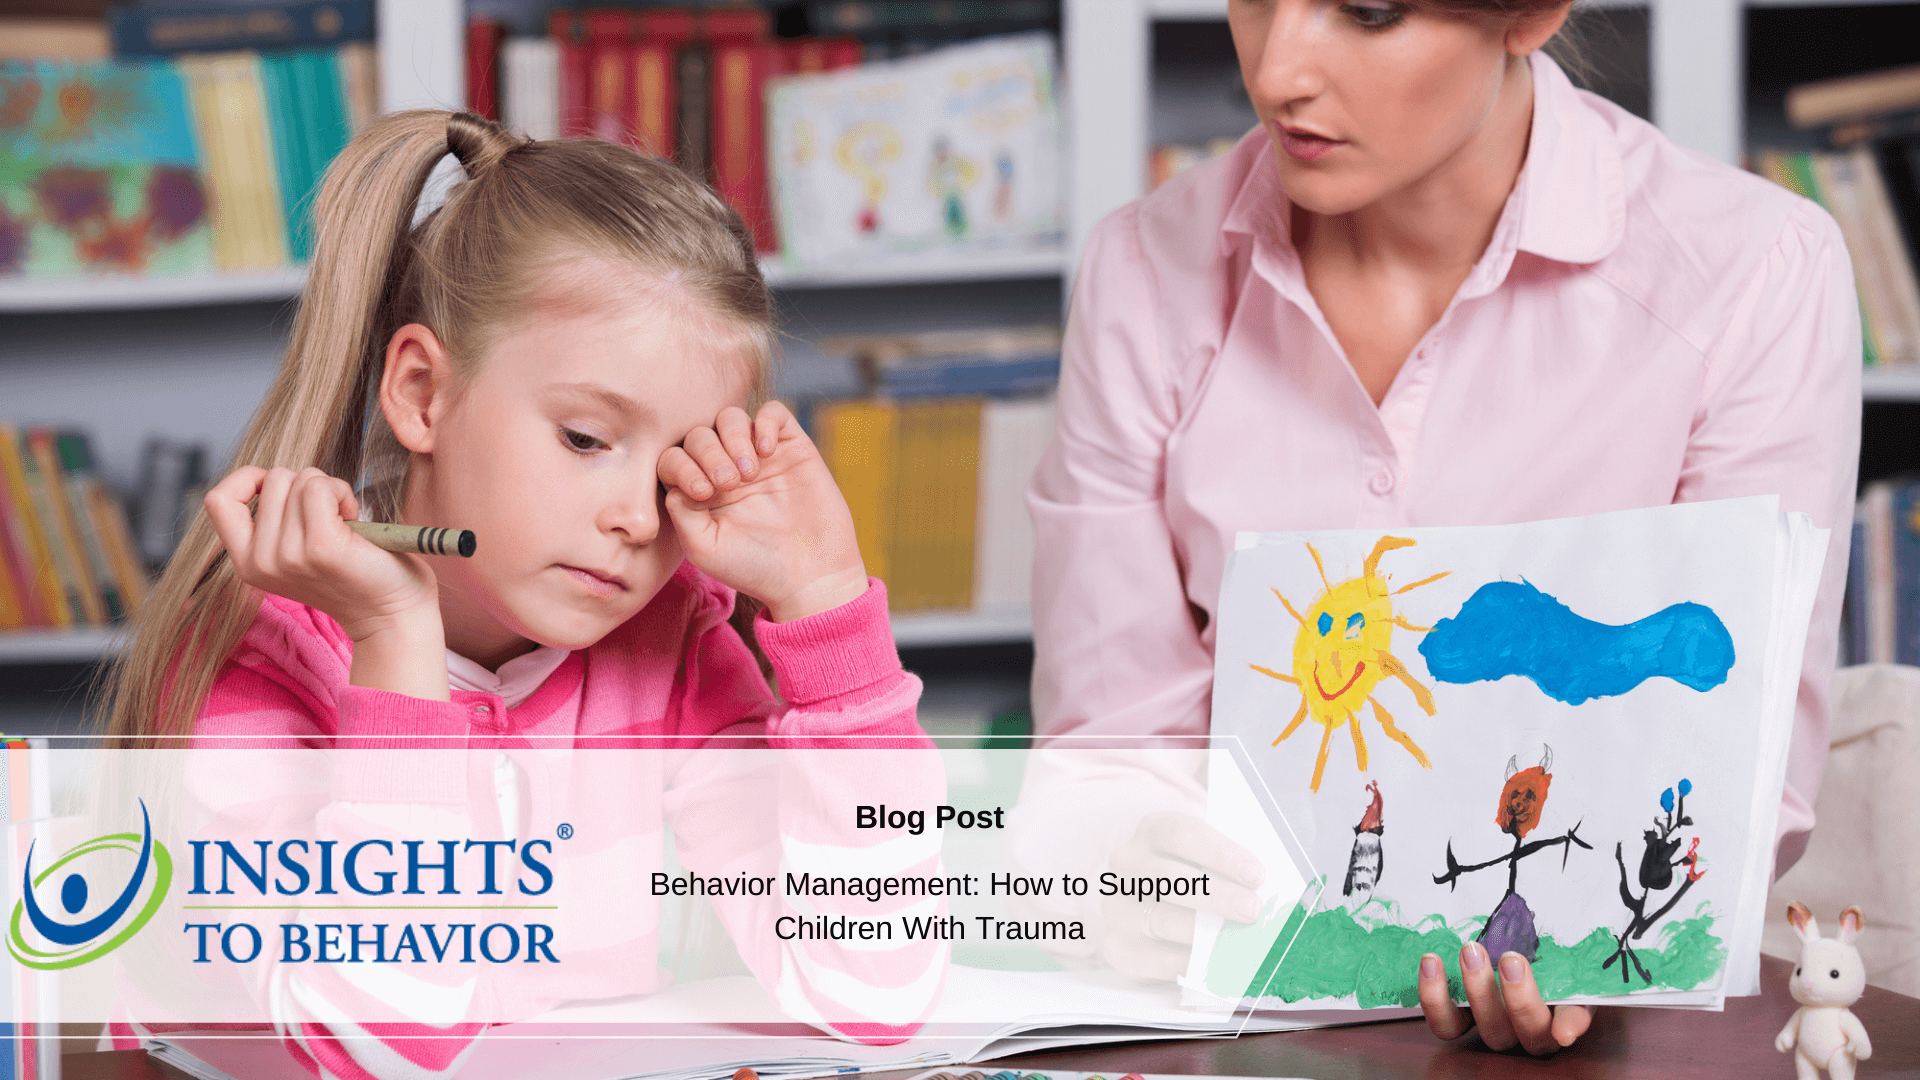 Behavior Management: How to Support Children With Trauma